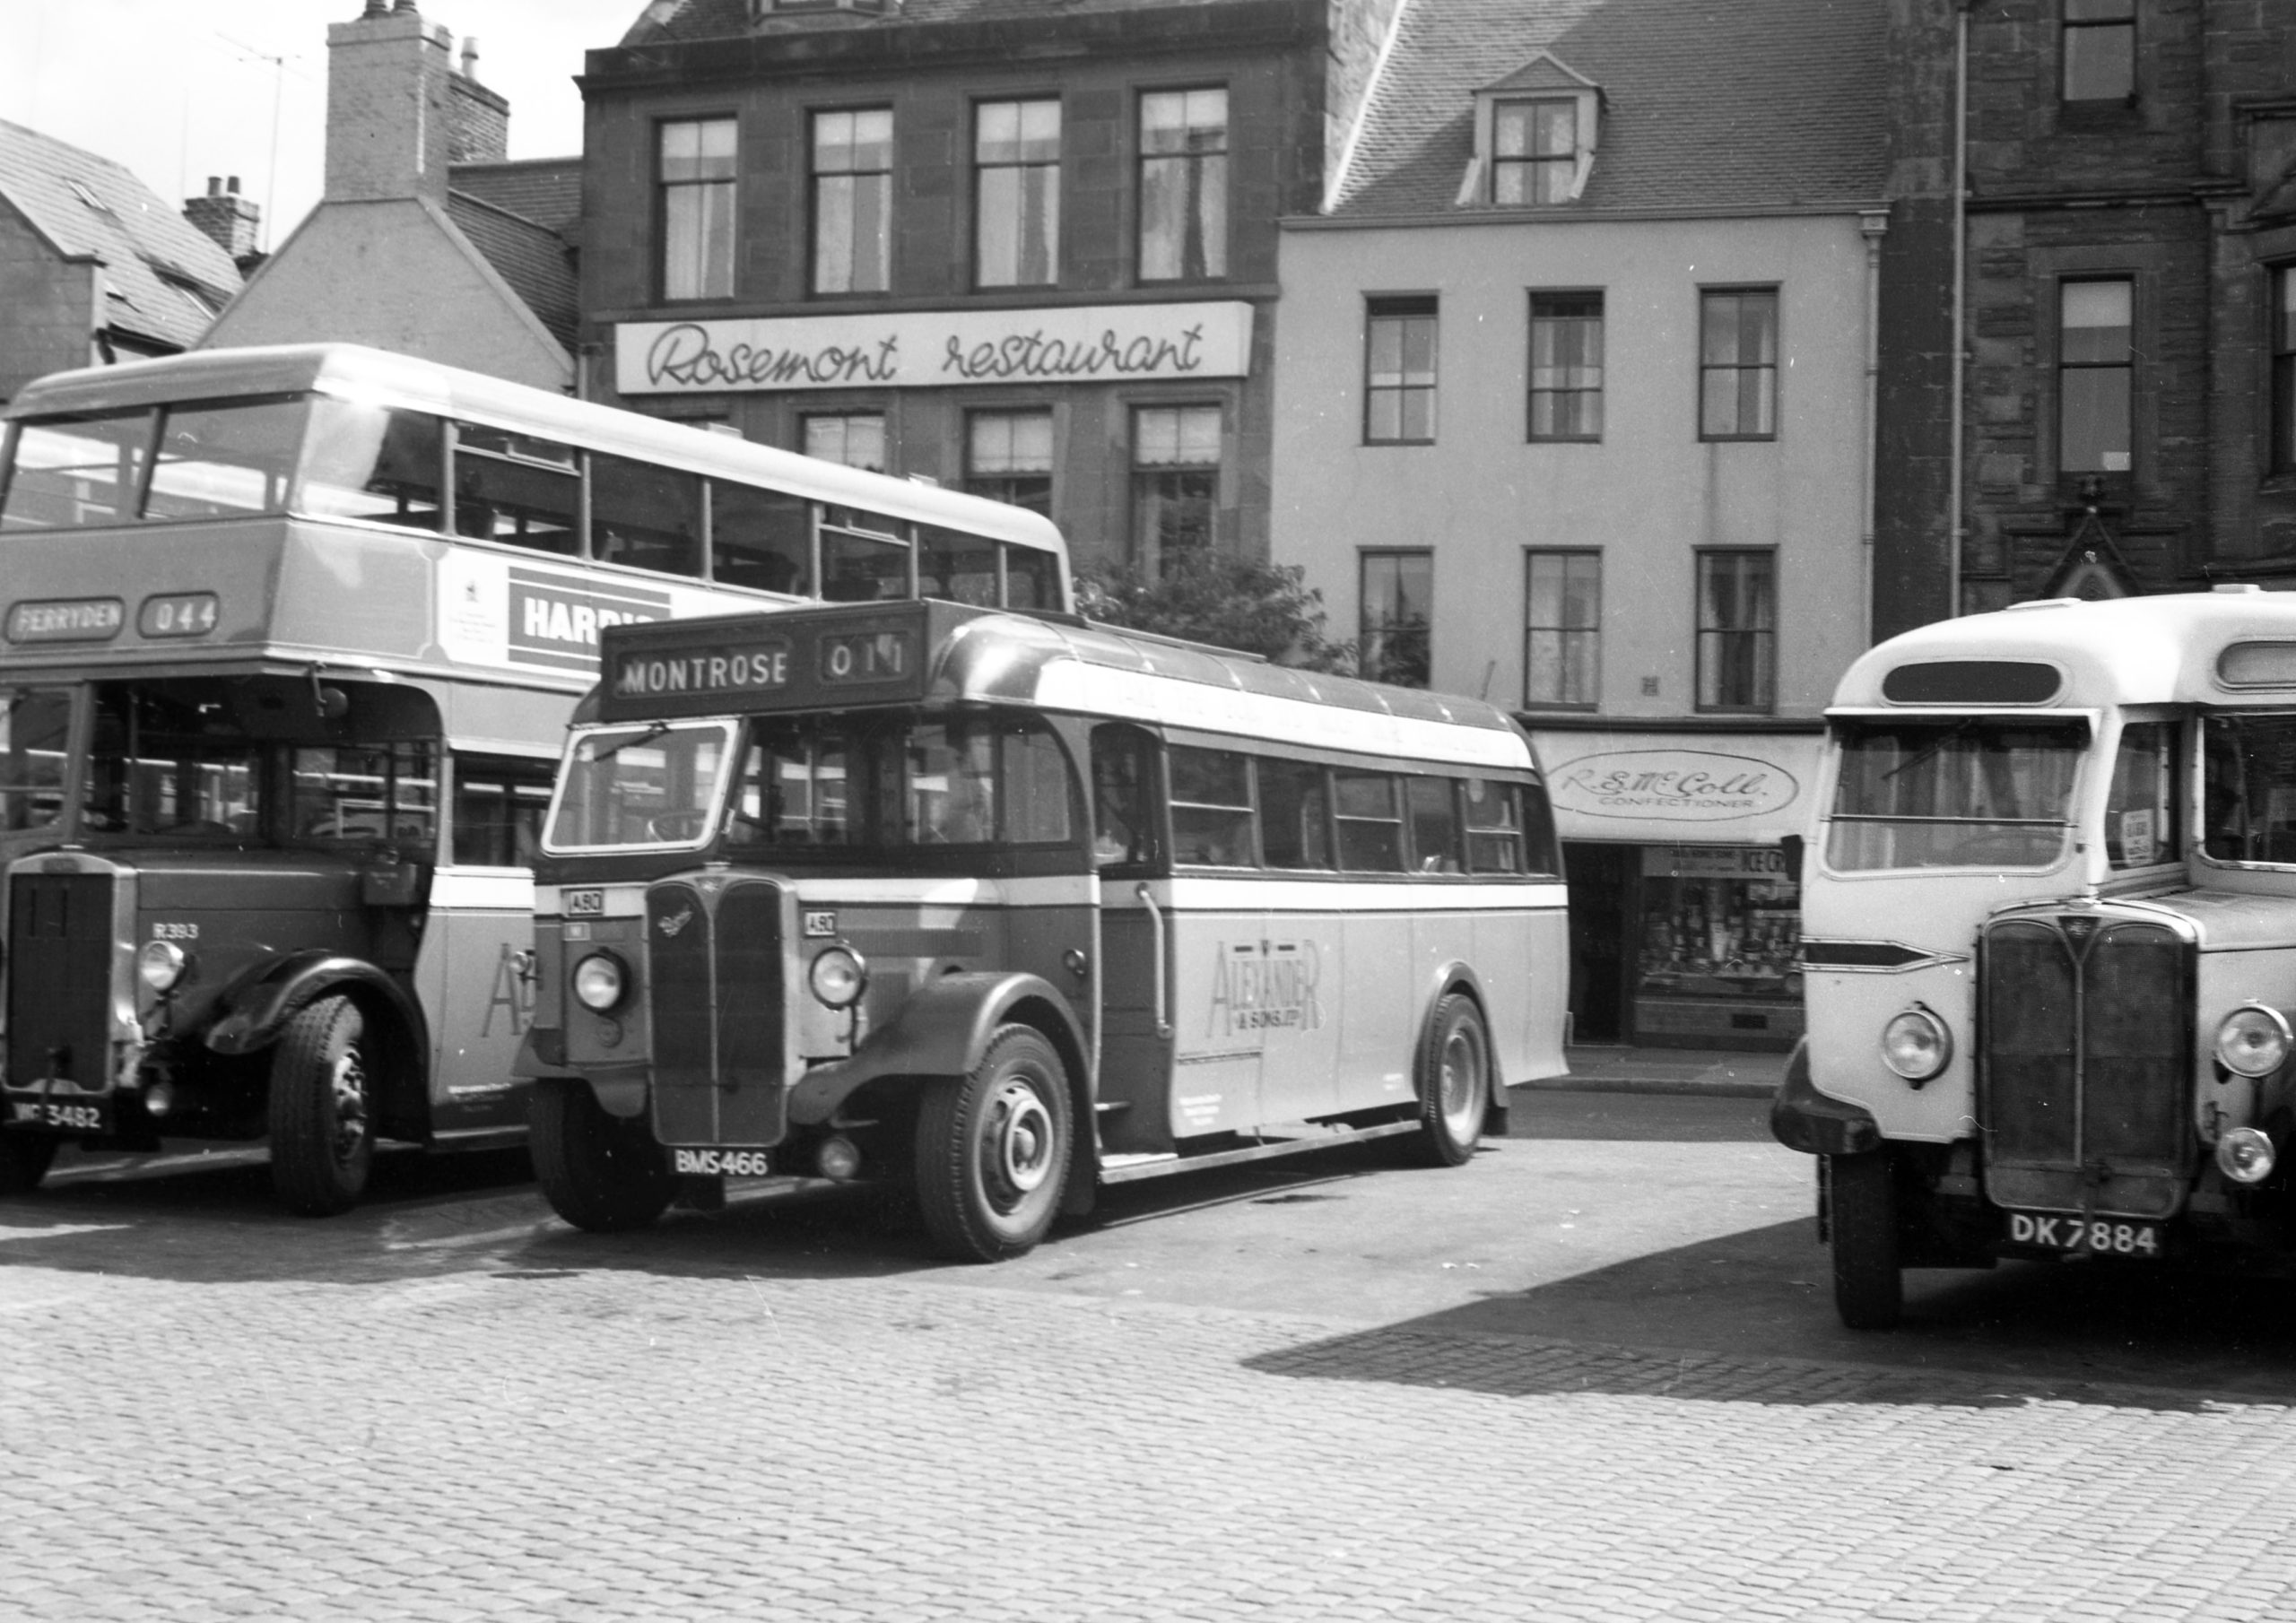 Henry Conn's new book highlights the Walter Alexander buses of the 1950s and 1960s.